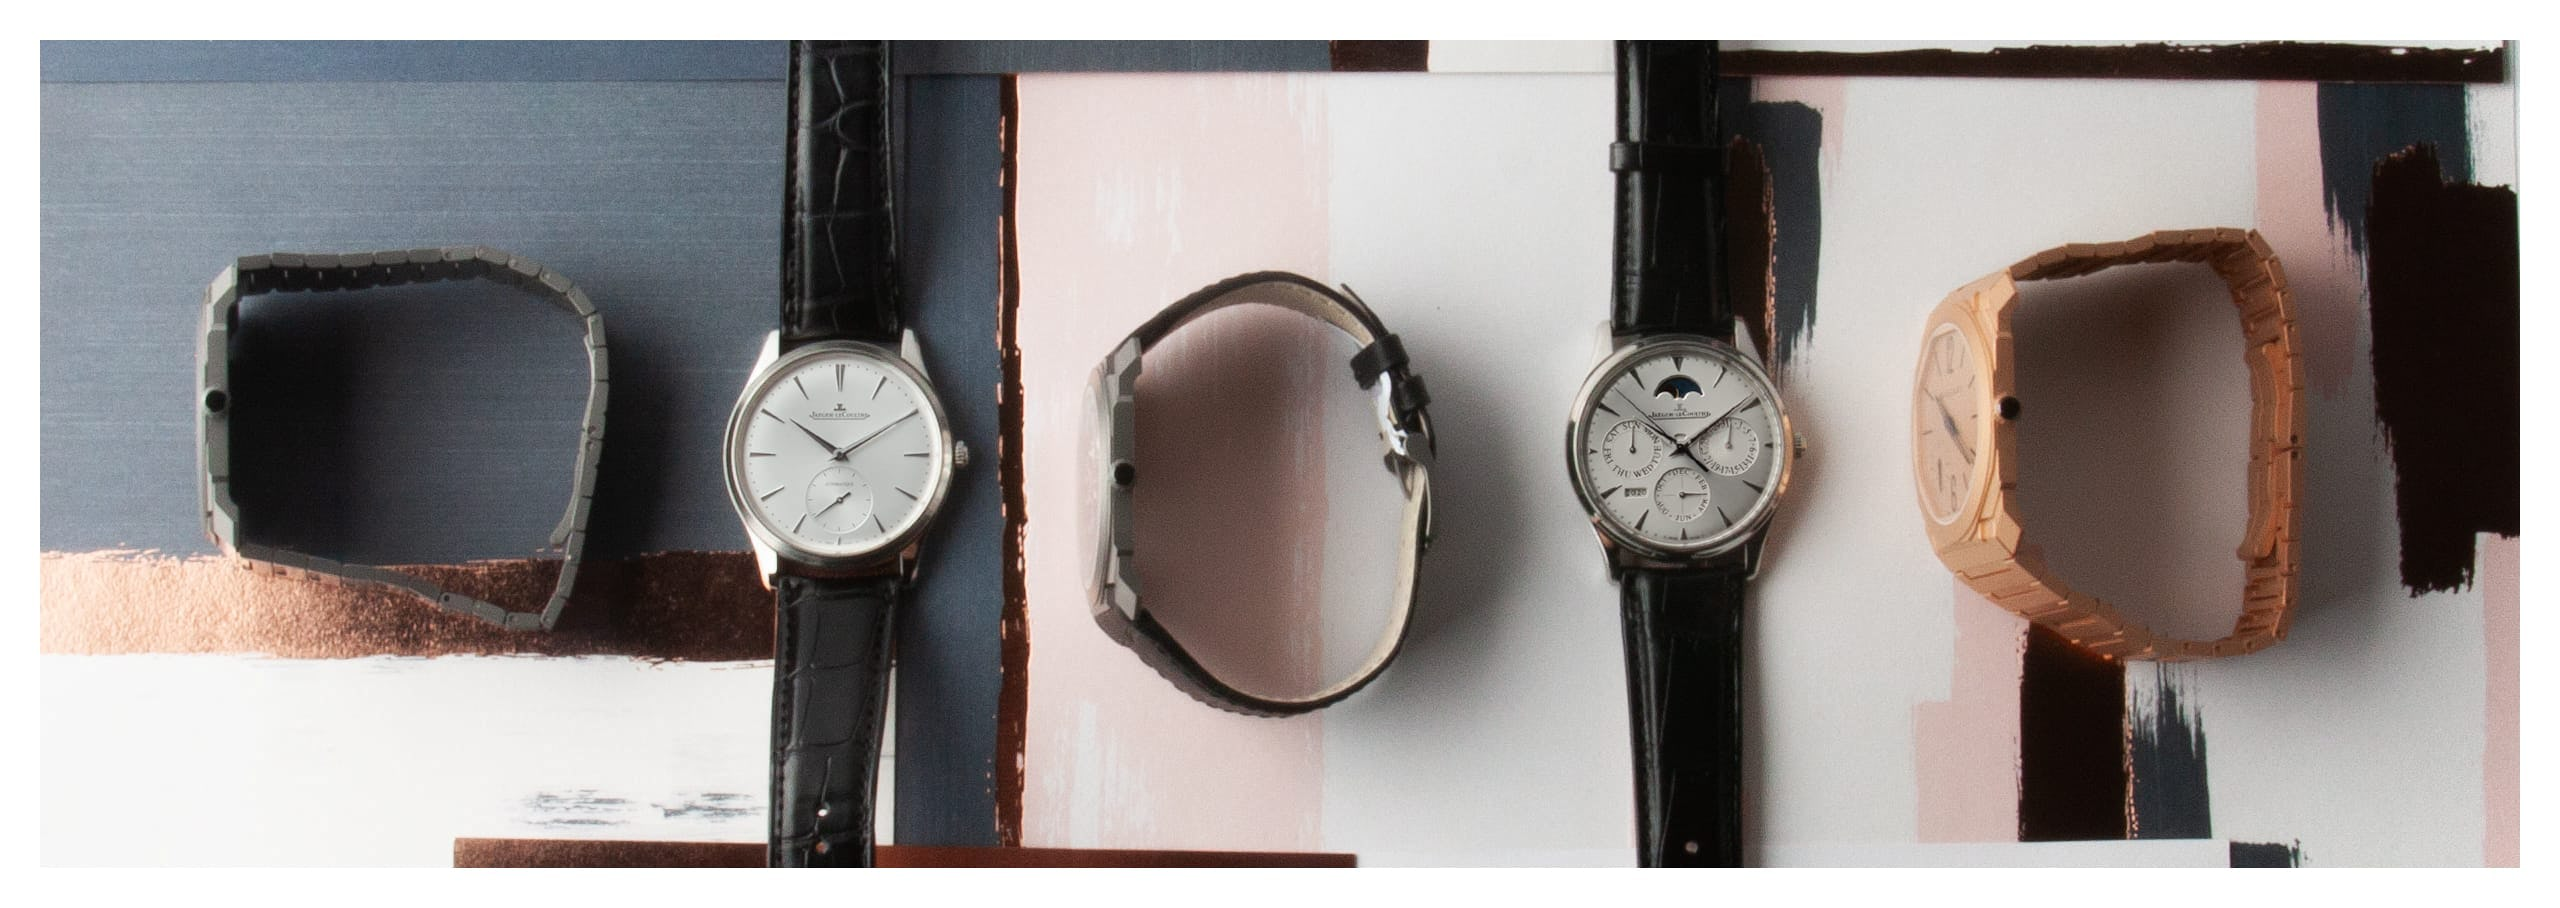 Battle of the Ultra-Thin Watches